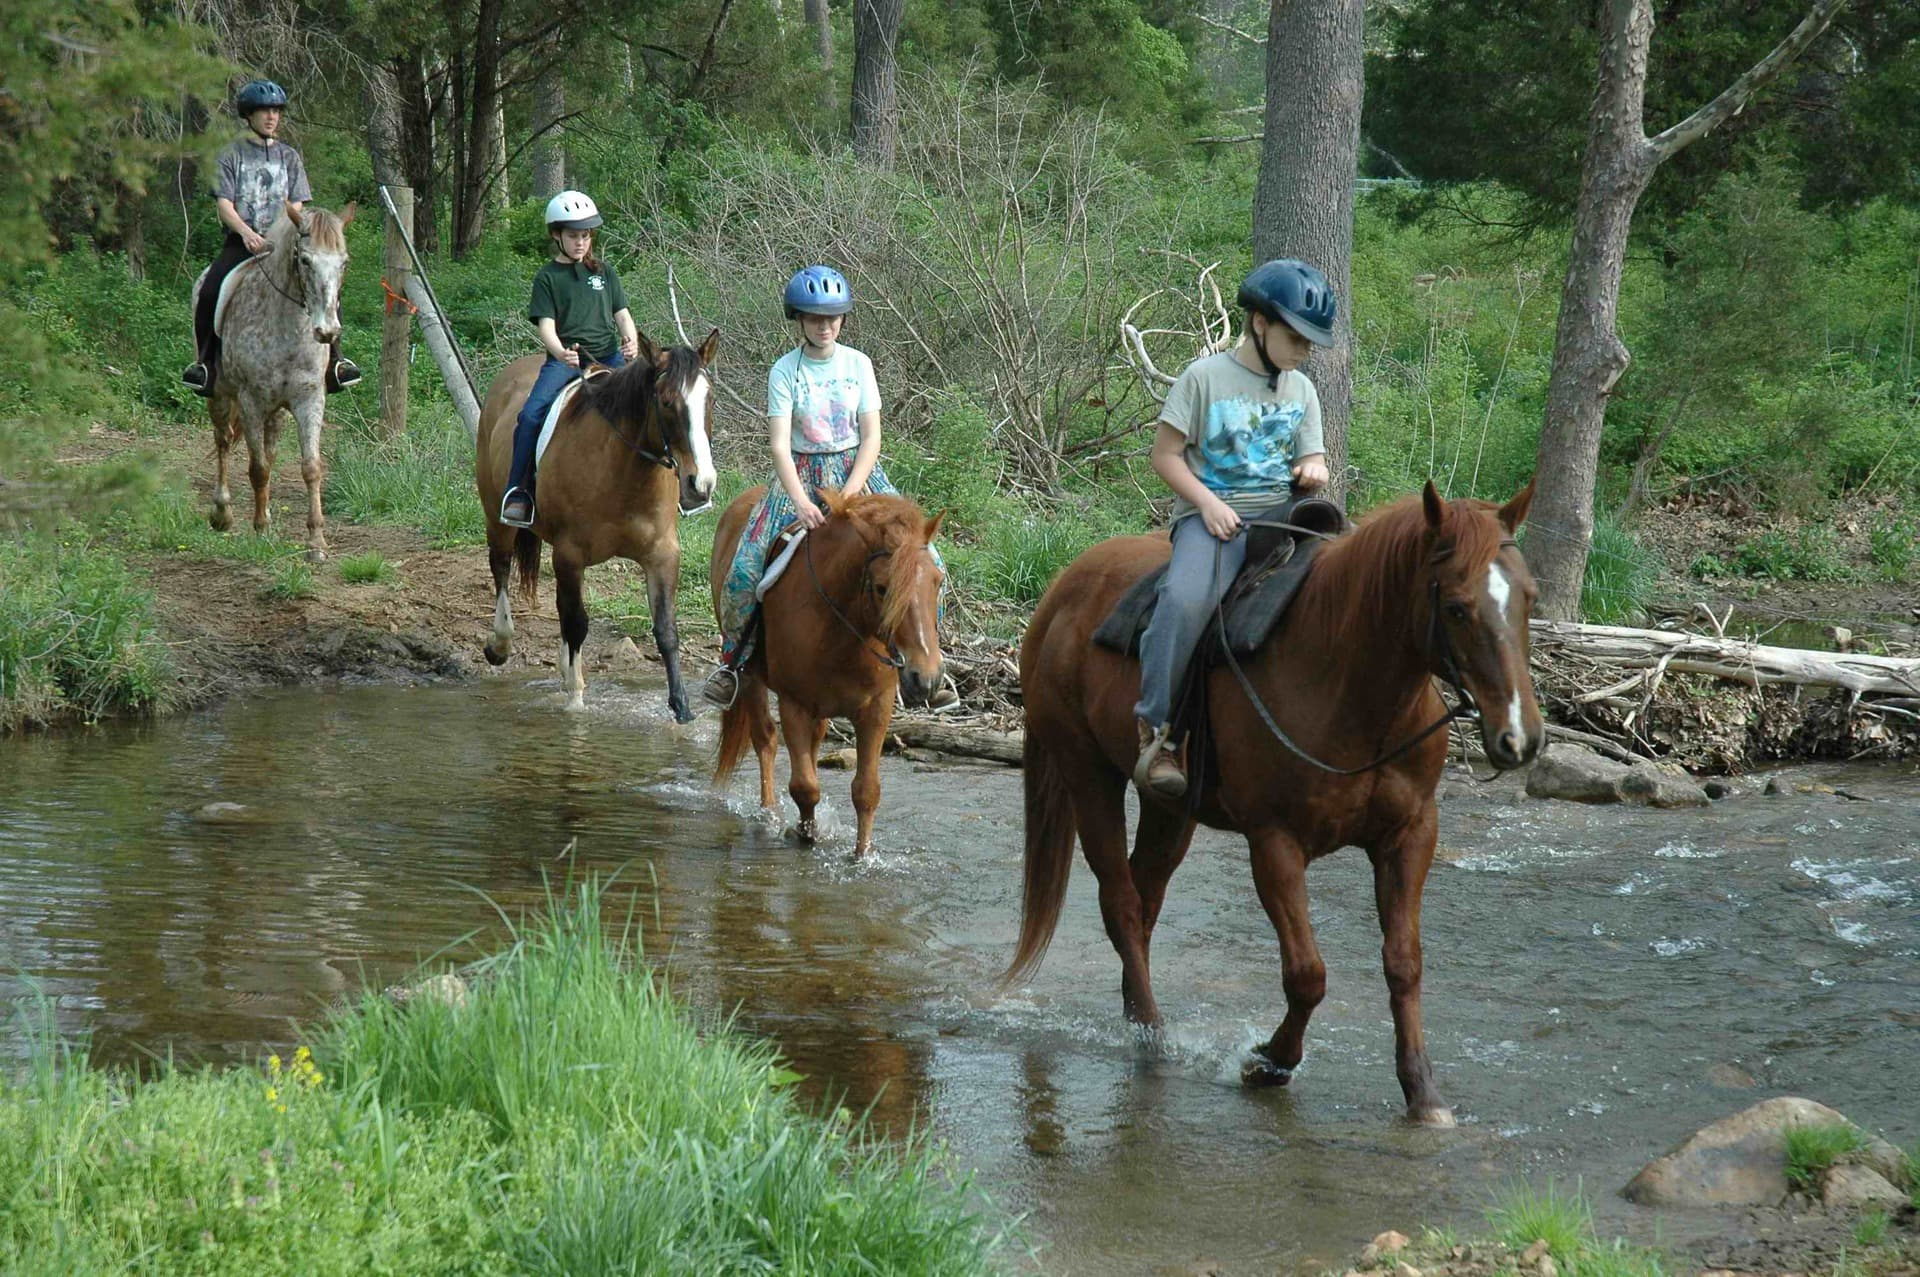 Places to go horseback riding near me best place 2017 for Places to go horseback riding near me